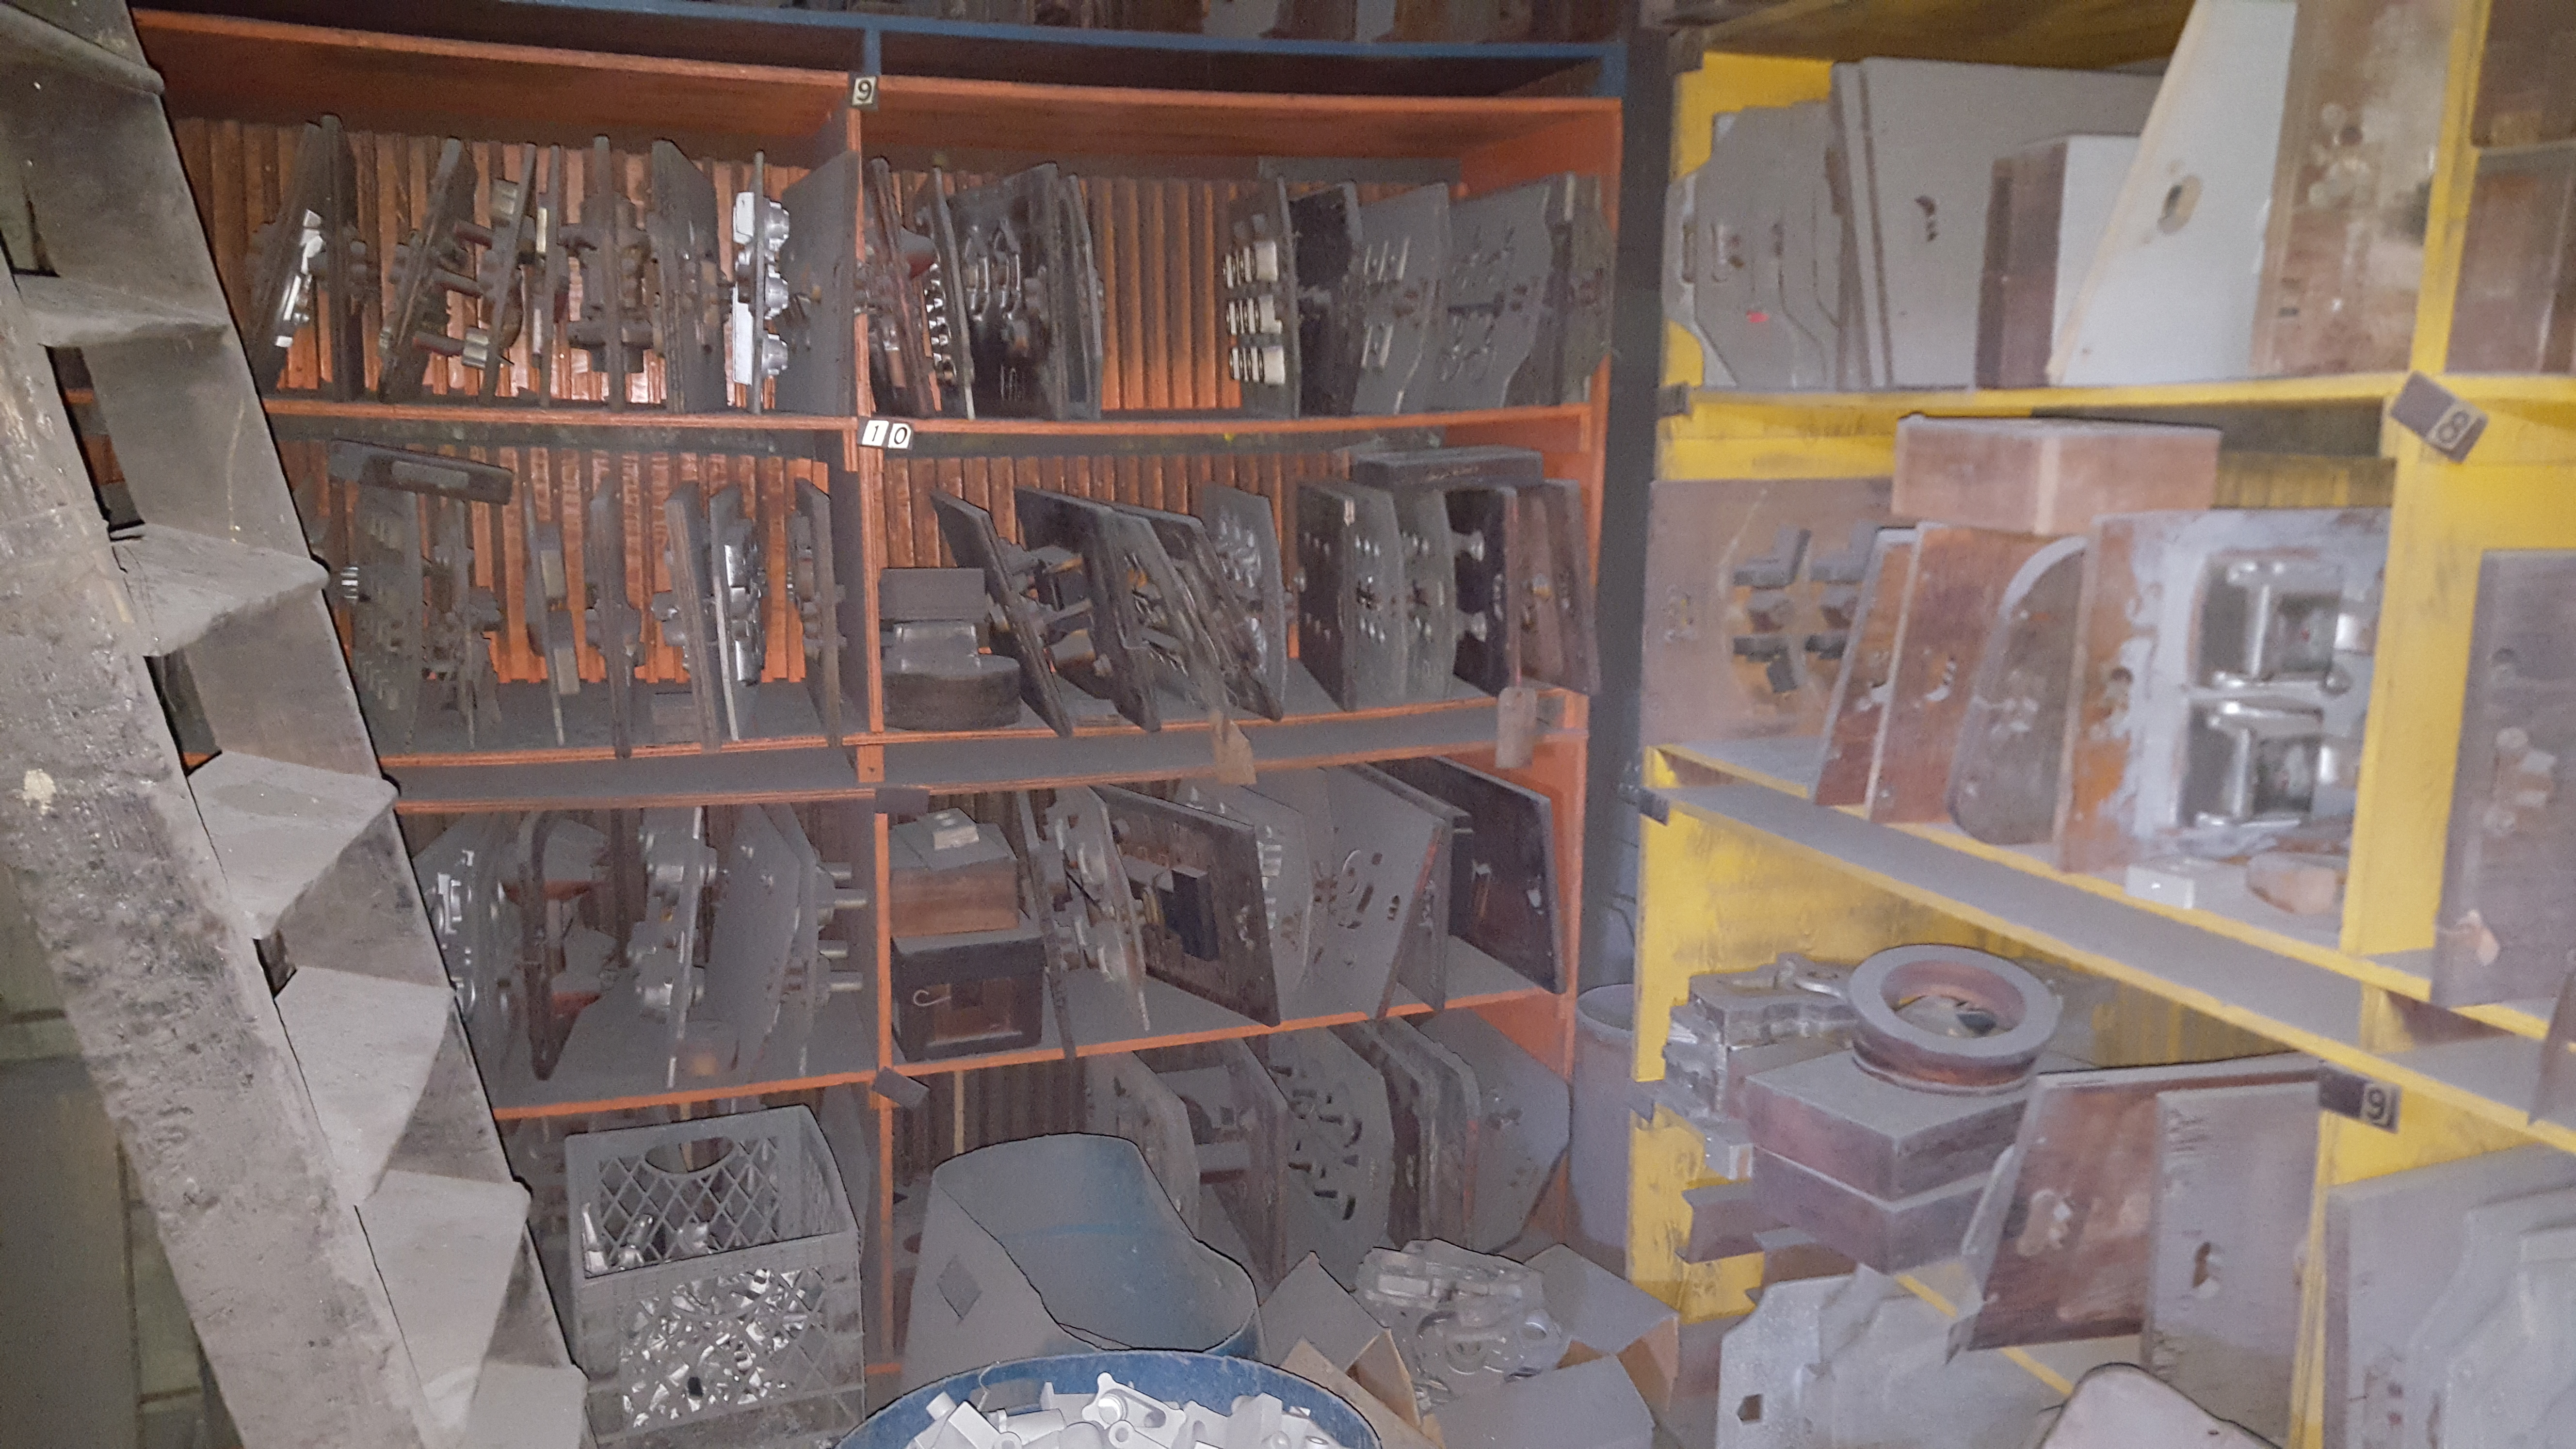 Lot 91 - ASST MOLDS PARTS IN ROOM